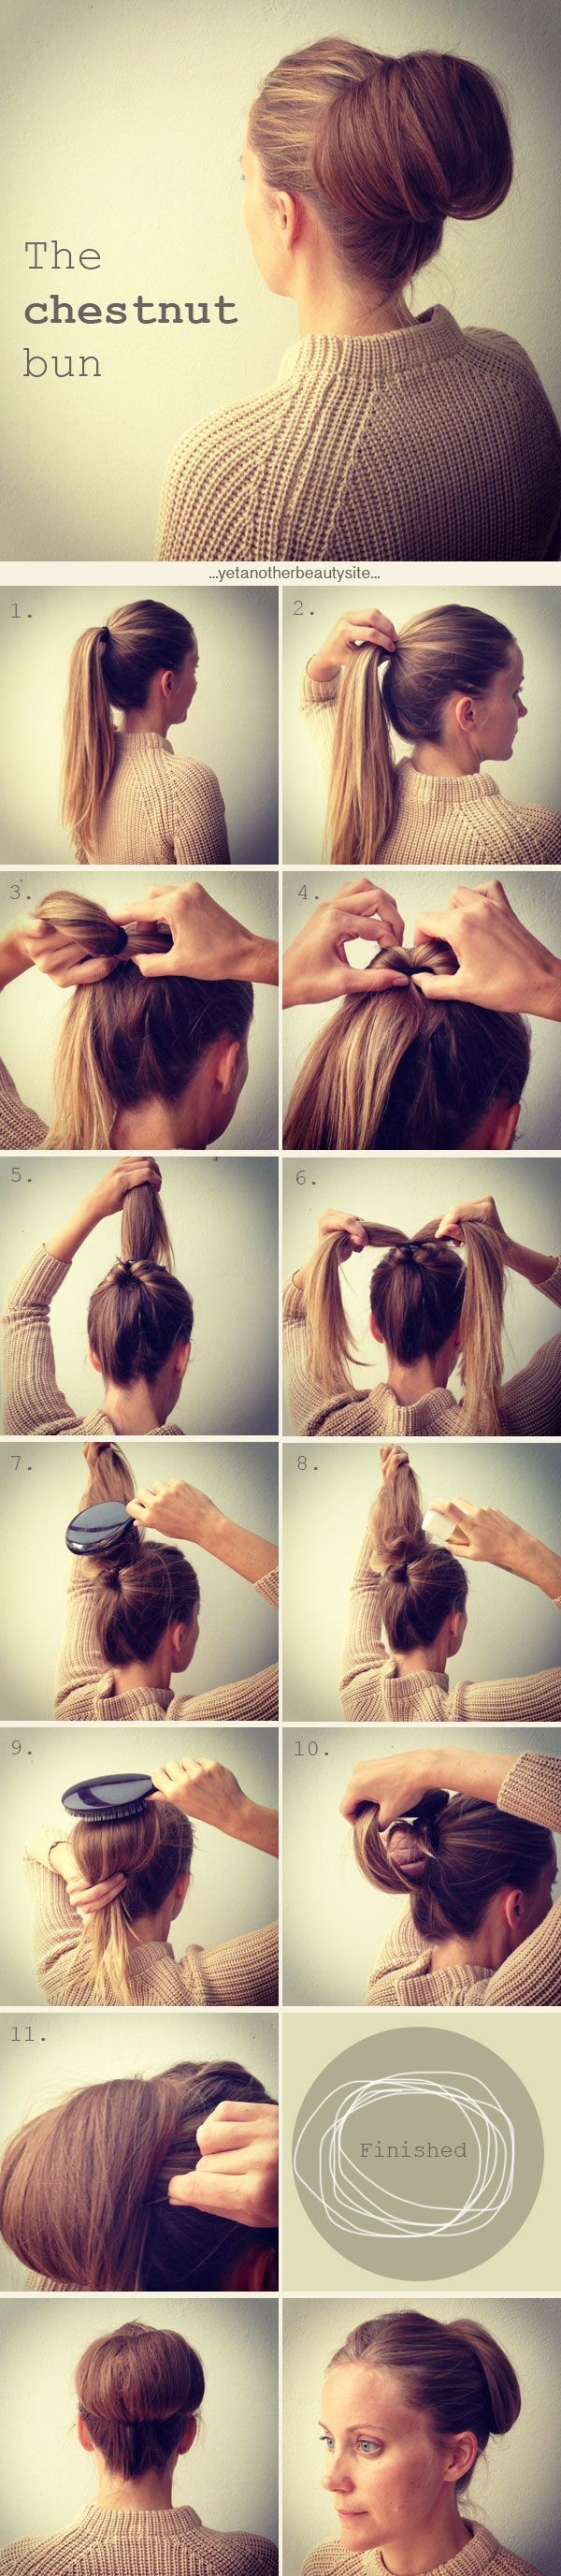 18 Simple Office Hairstyles For Women You Have To See Popular